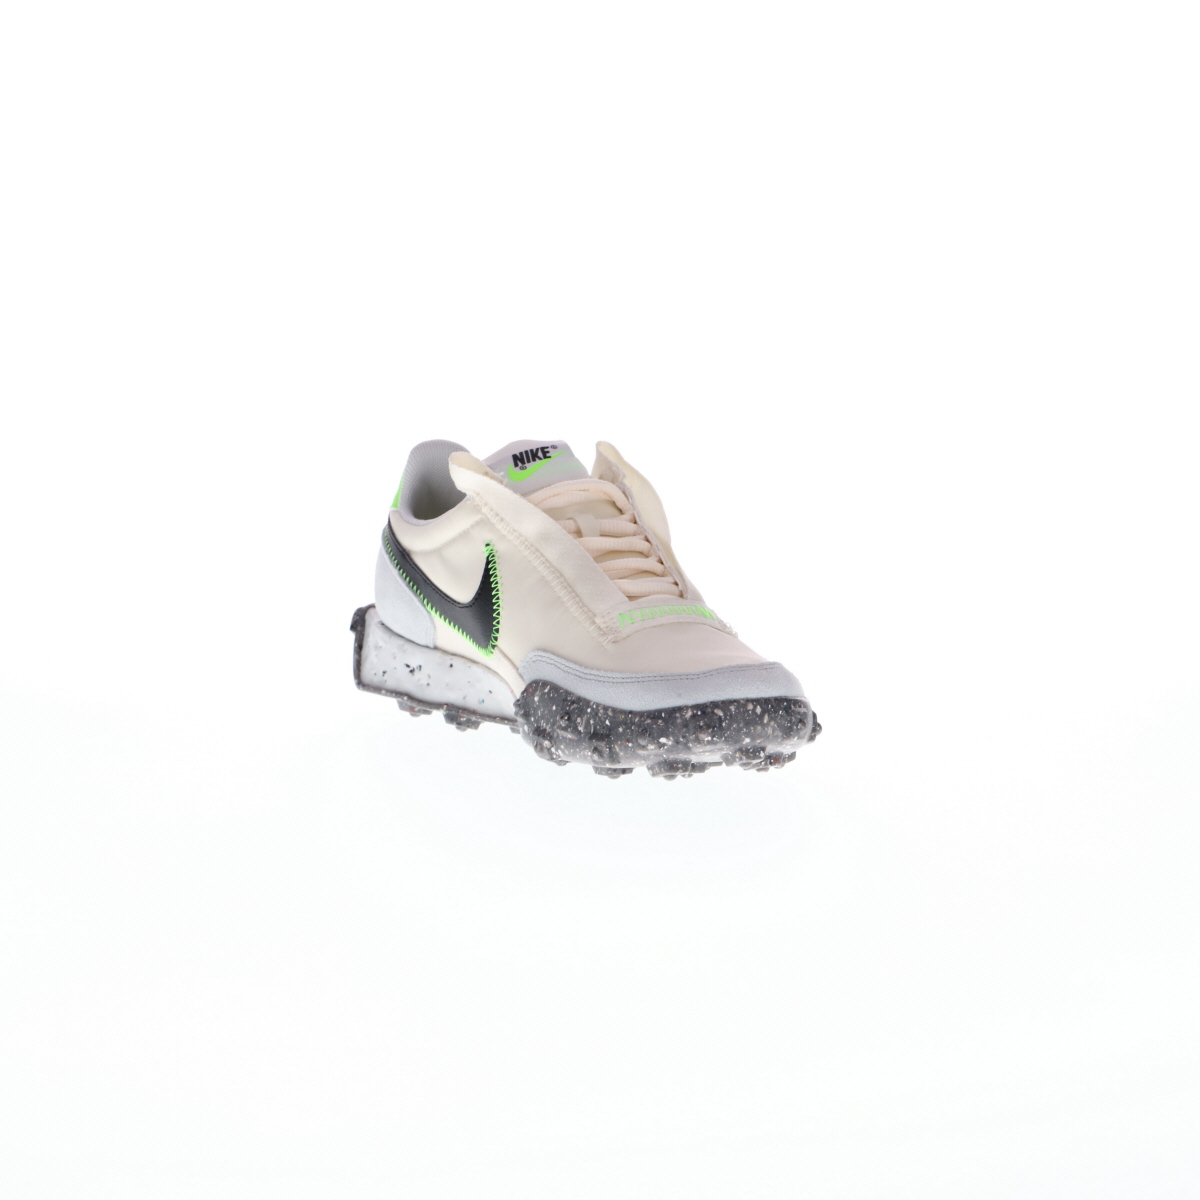 mens nike frog boots sale